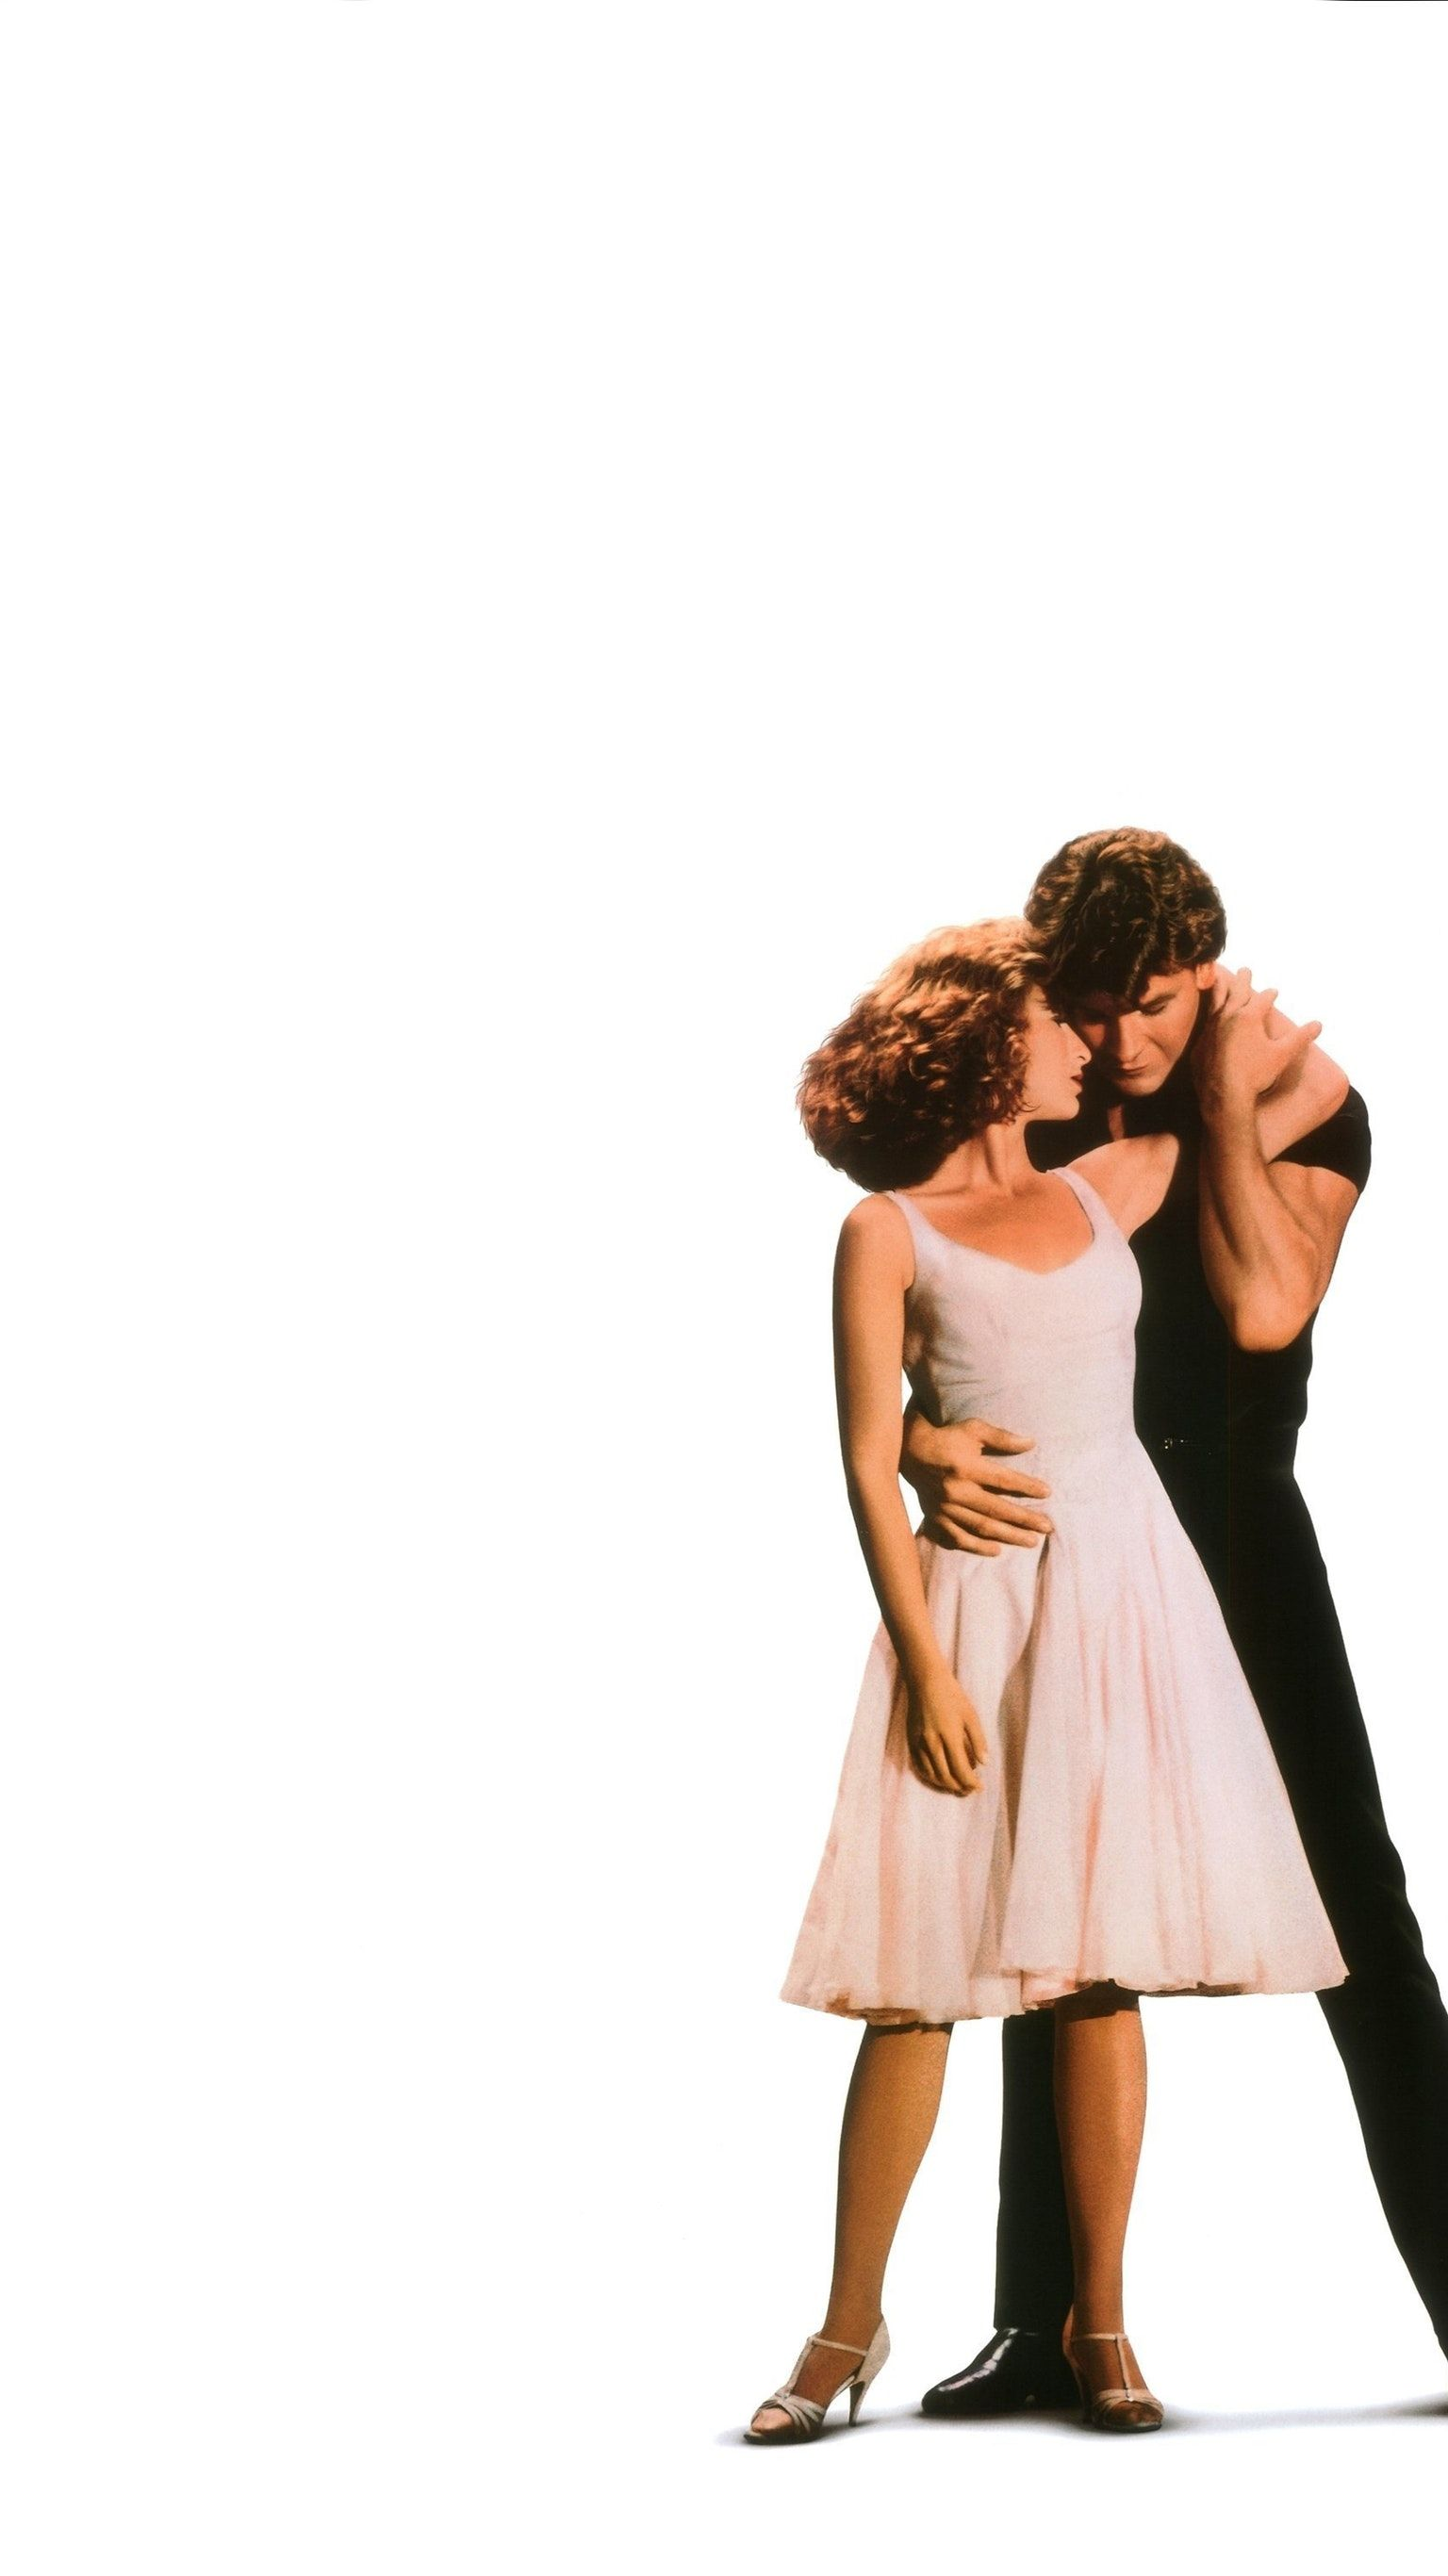 Dirty Dancing Movie Wallpapers 101 images in Collection Page 1 1536x2733